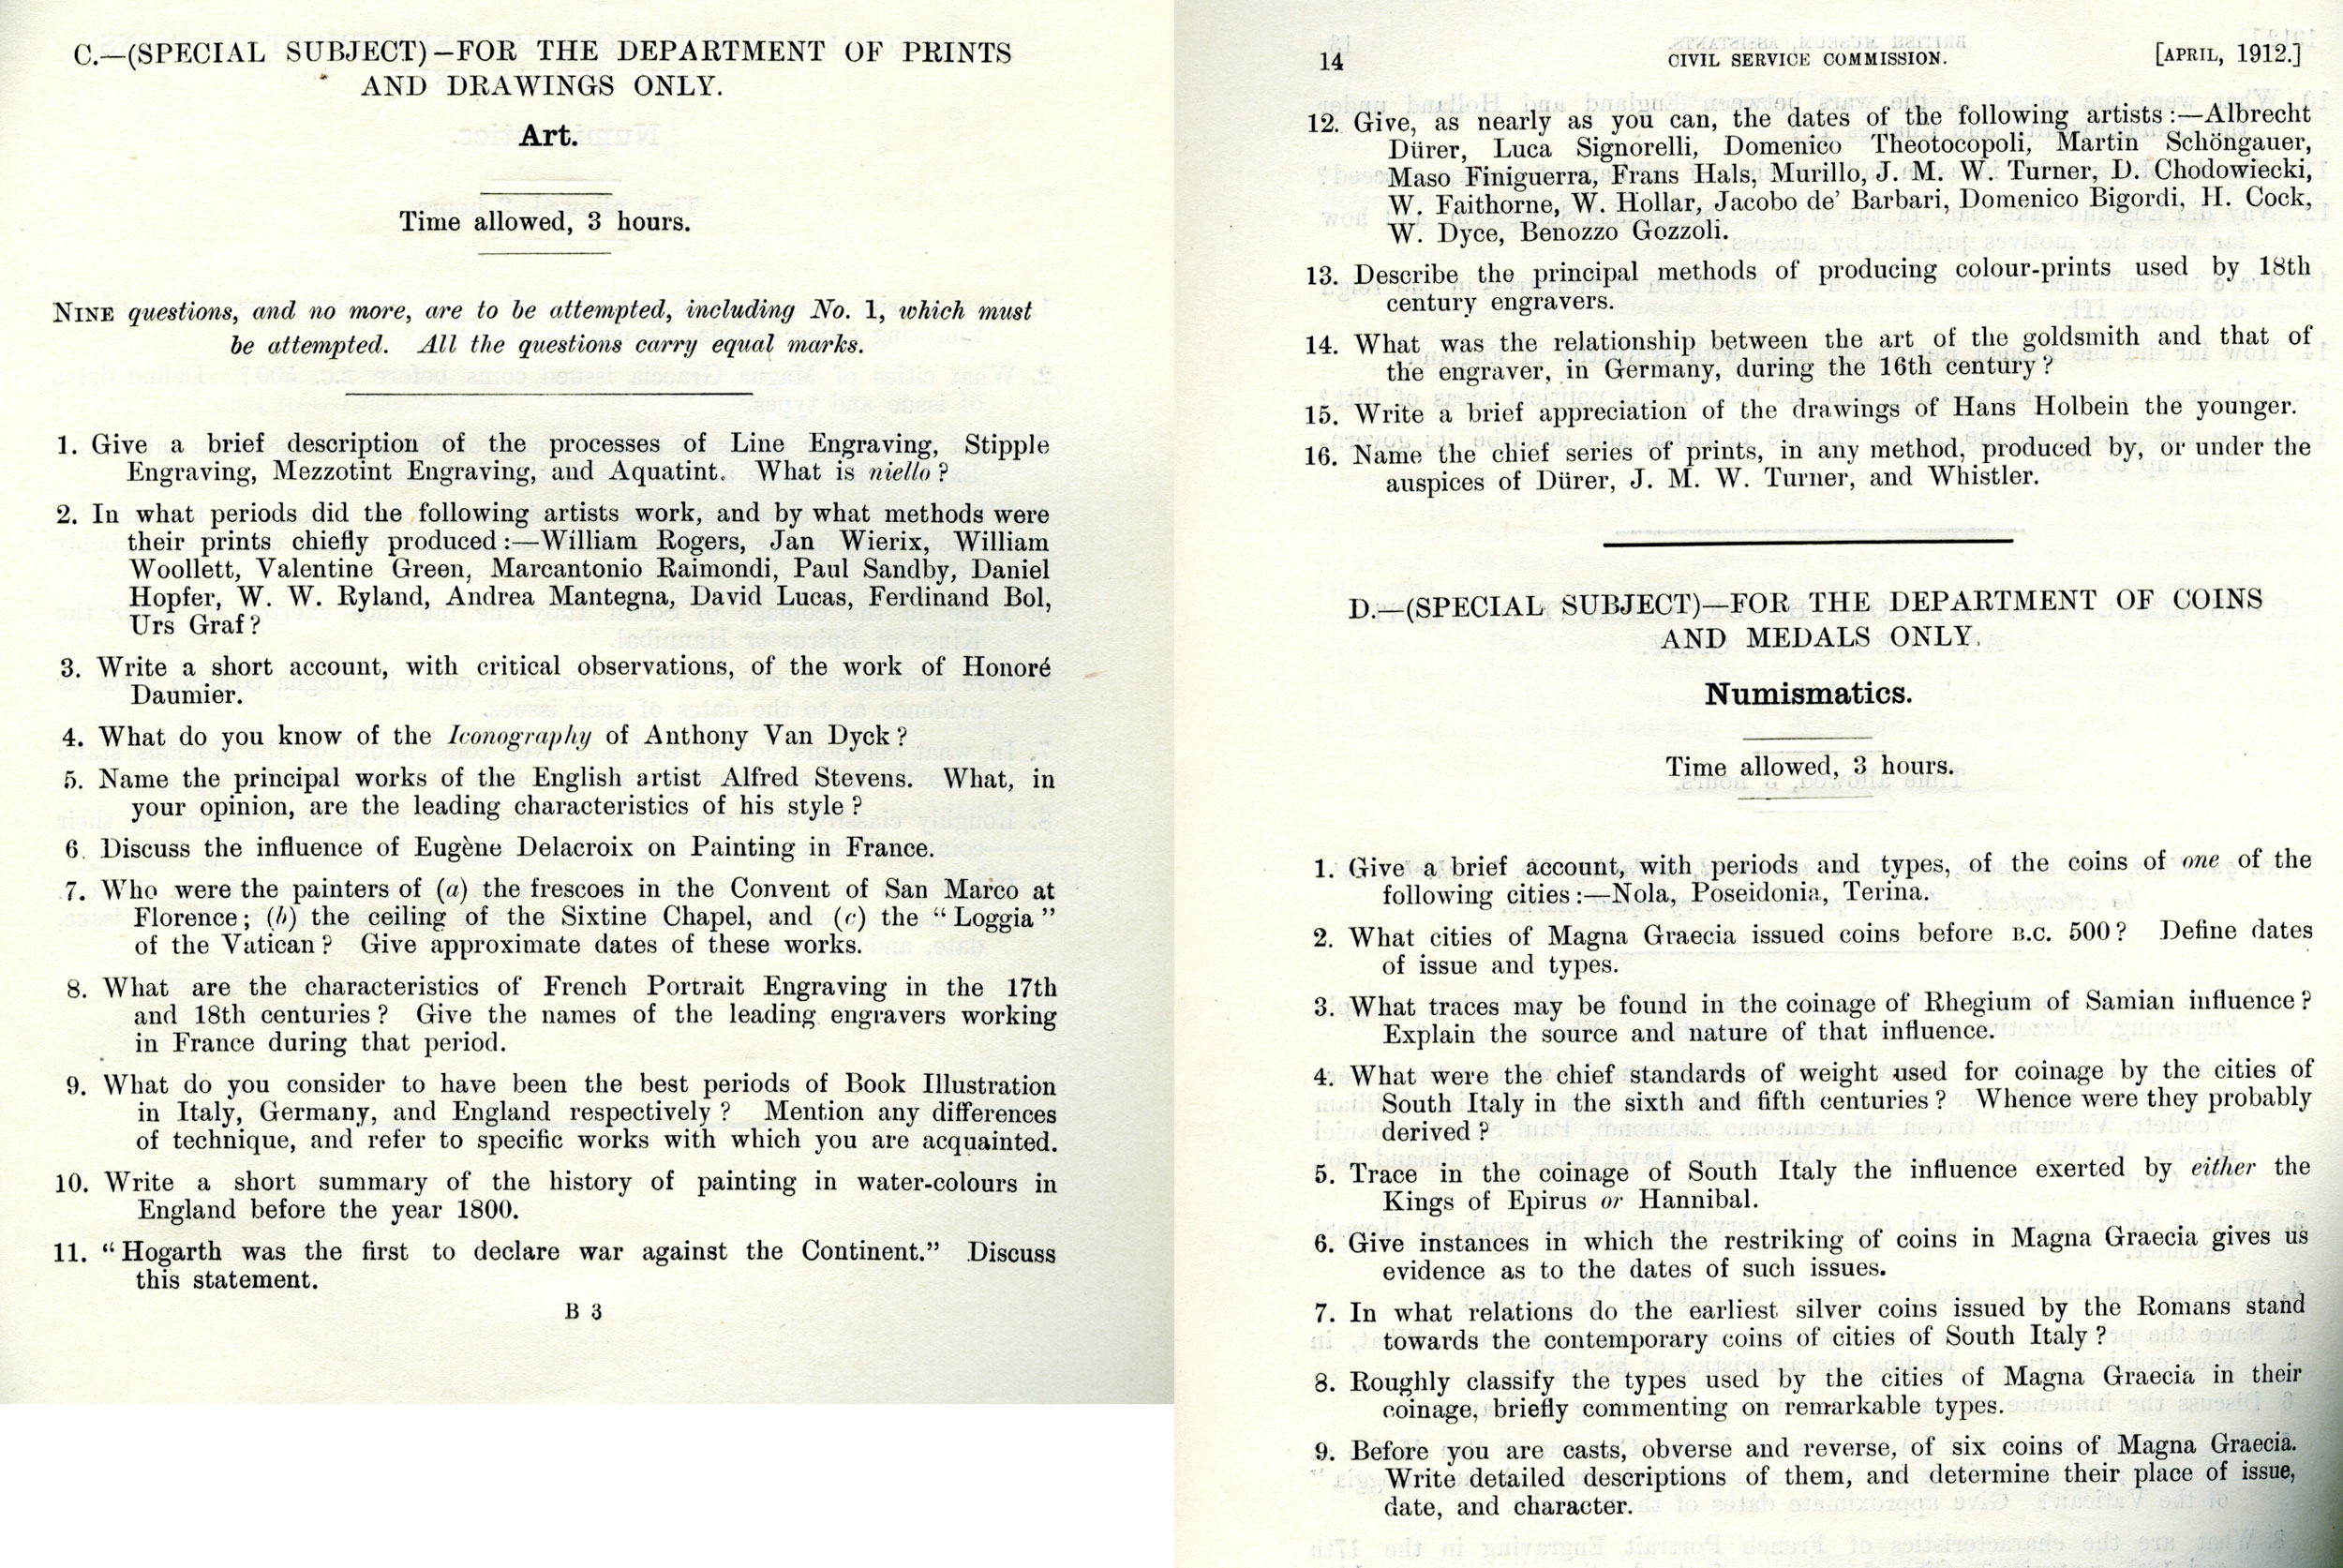 Examination from 1912 for prospective employees